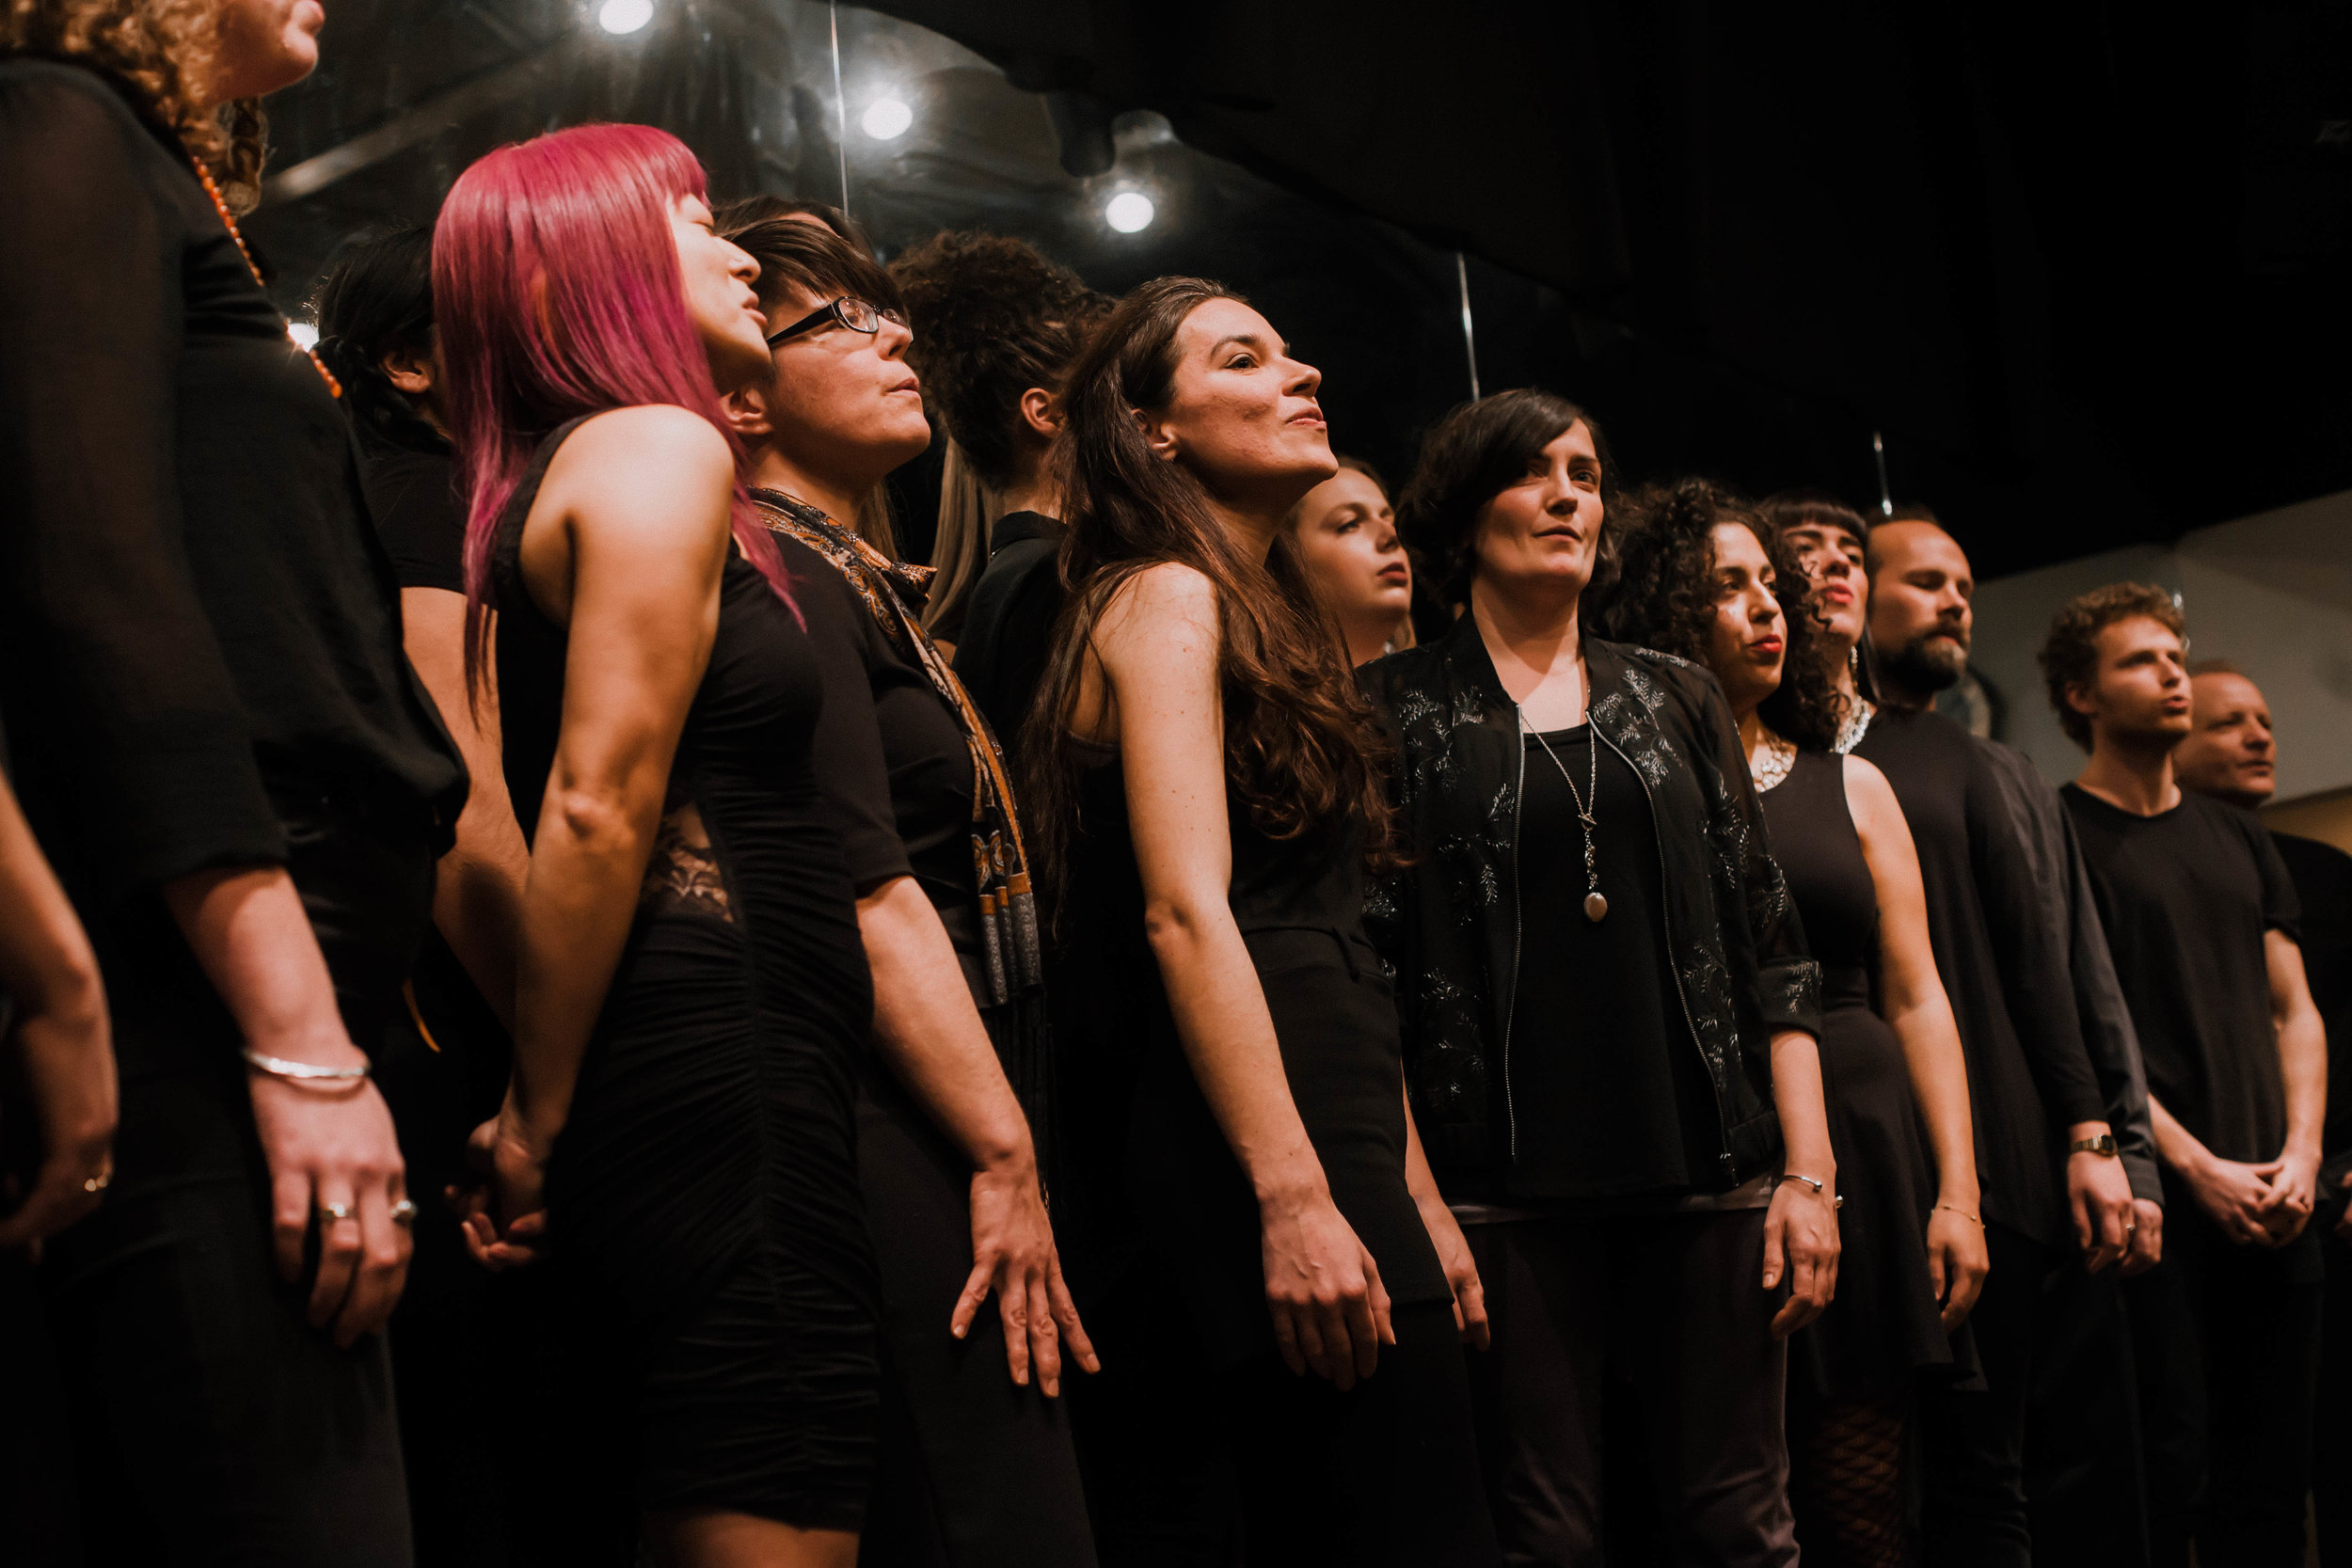 Rain Coast Choir performing at One Thousand Rivers for our Sparkle and Shine Showcase, Dec. 16th, 2018